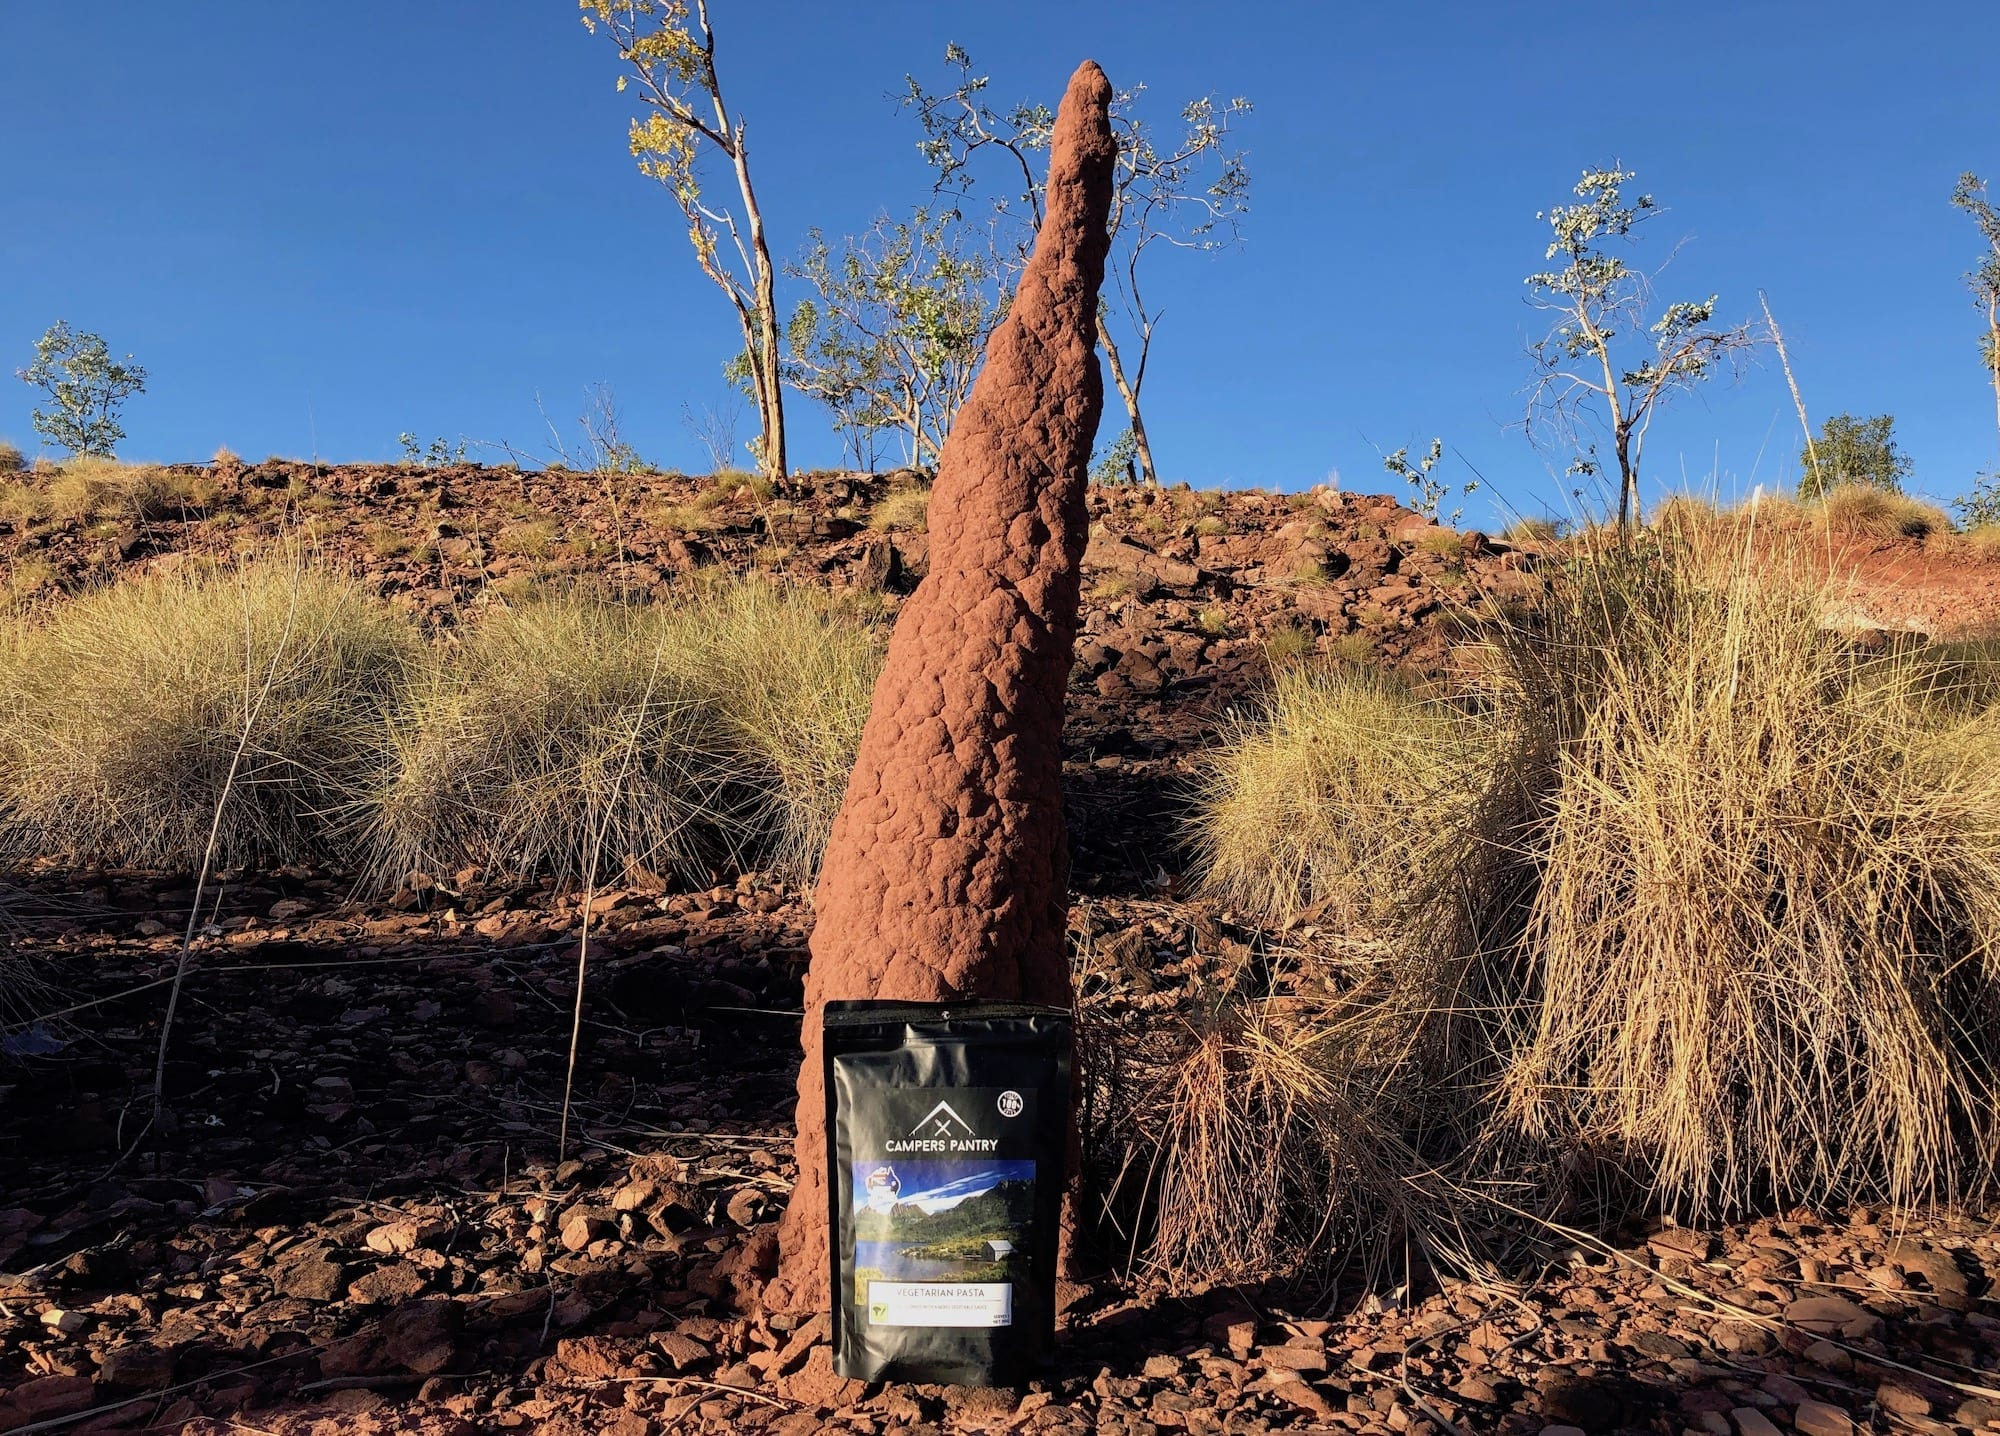 Vegetarian Pasta from Campers Pantry in front of a termite mound in Judbarra / Gragory National Park, NT.